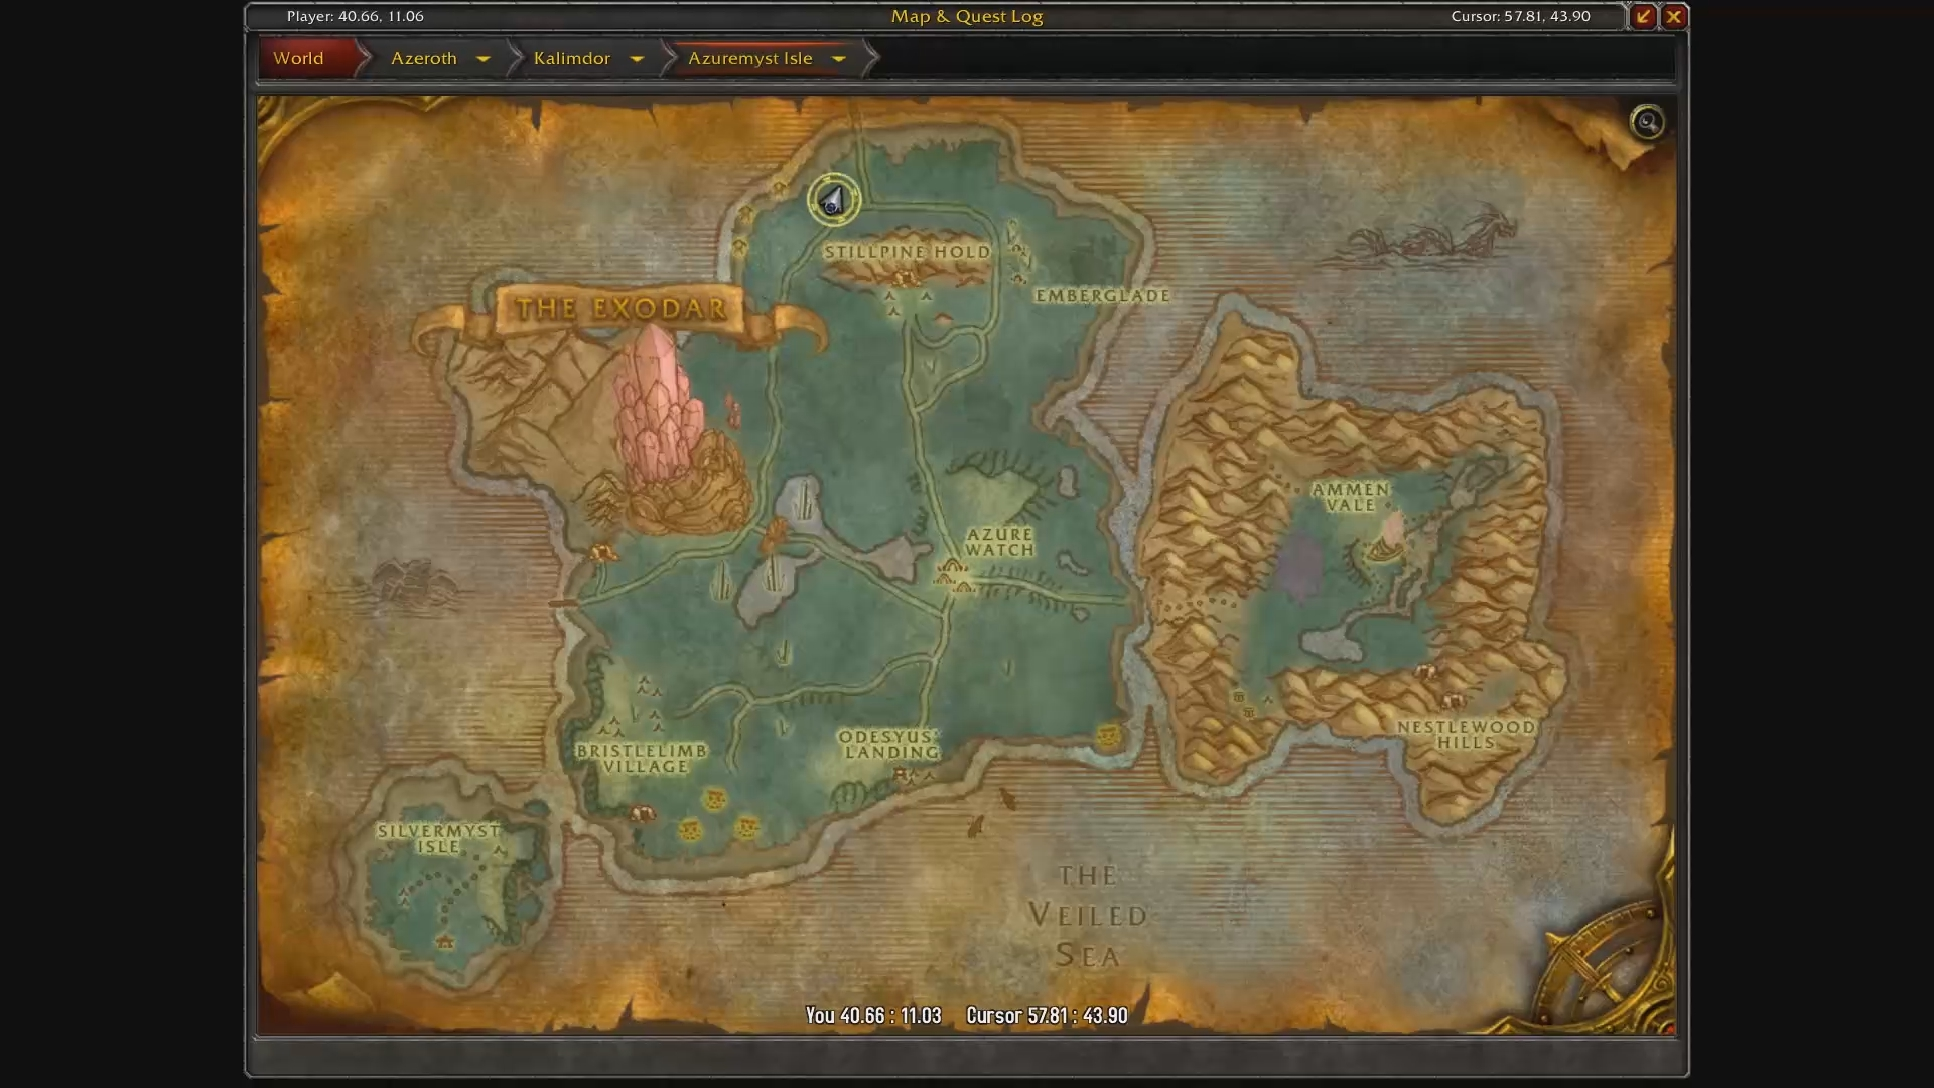 How do Horde get to Bloodmyst Isle? - MMO-Champion